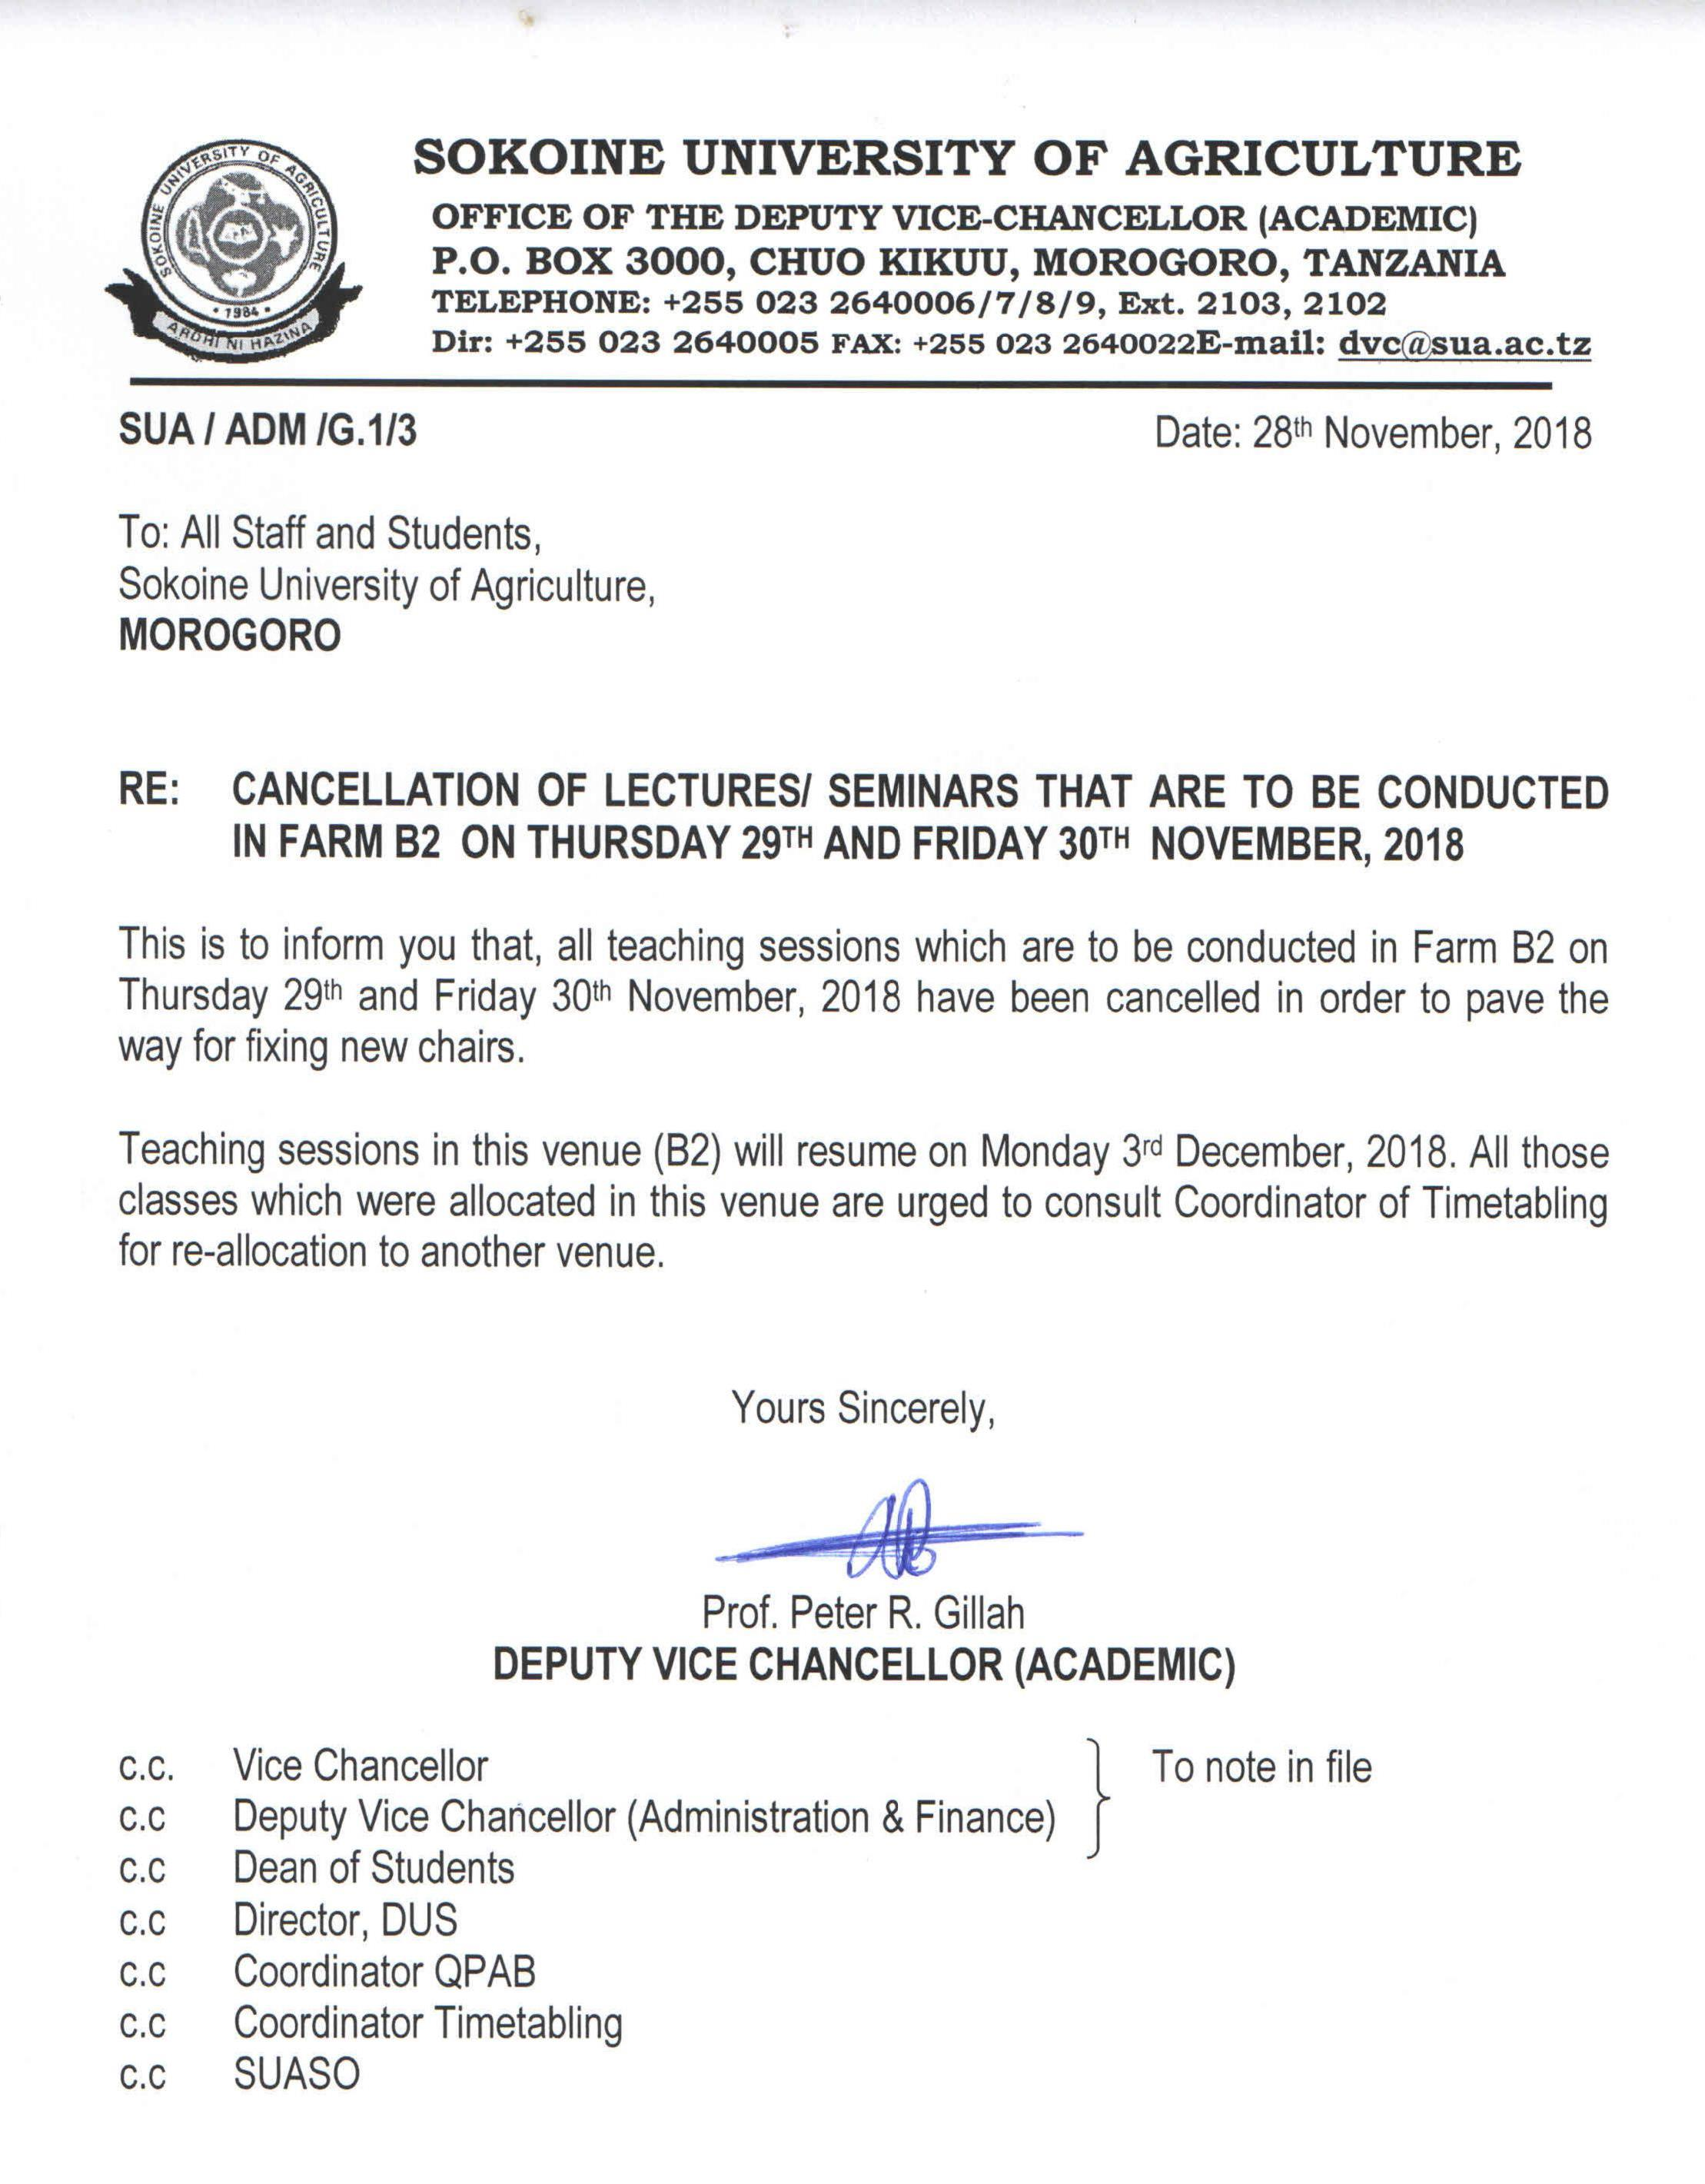 CANCELLATION OF LECTURES/SEMINARS THAT ARE TO BE CONDUCTED IN FARM B2